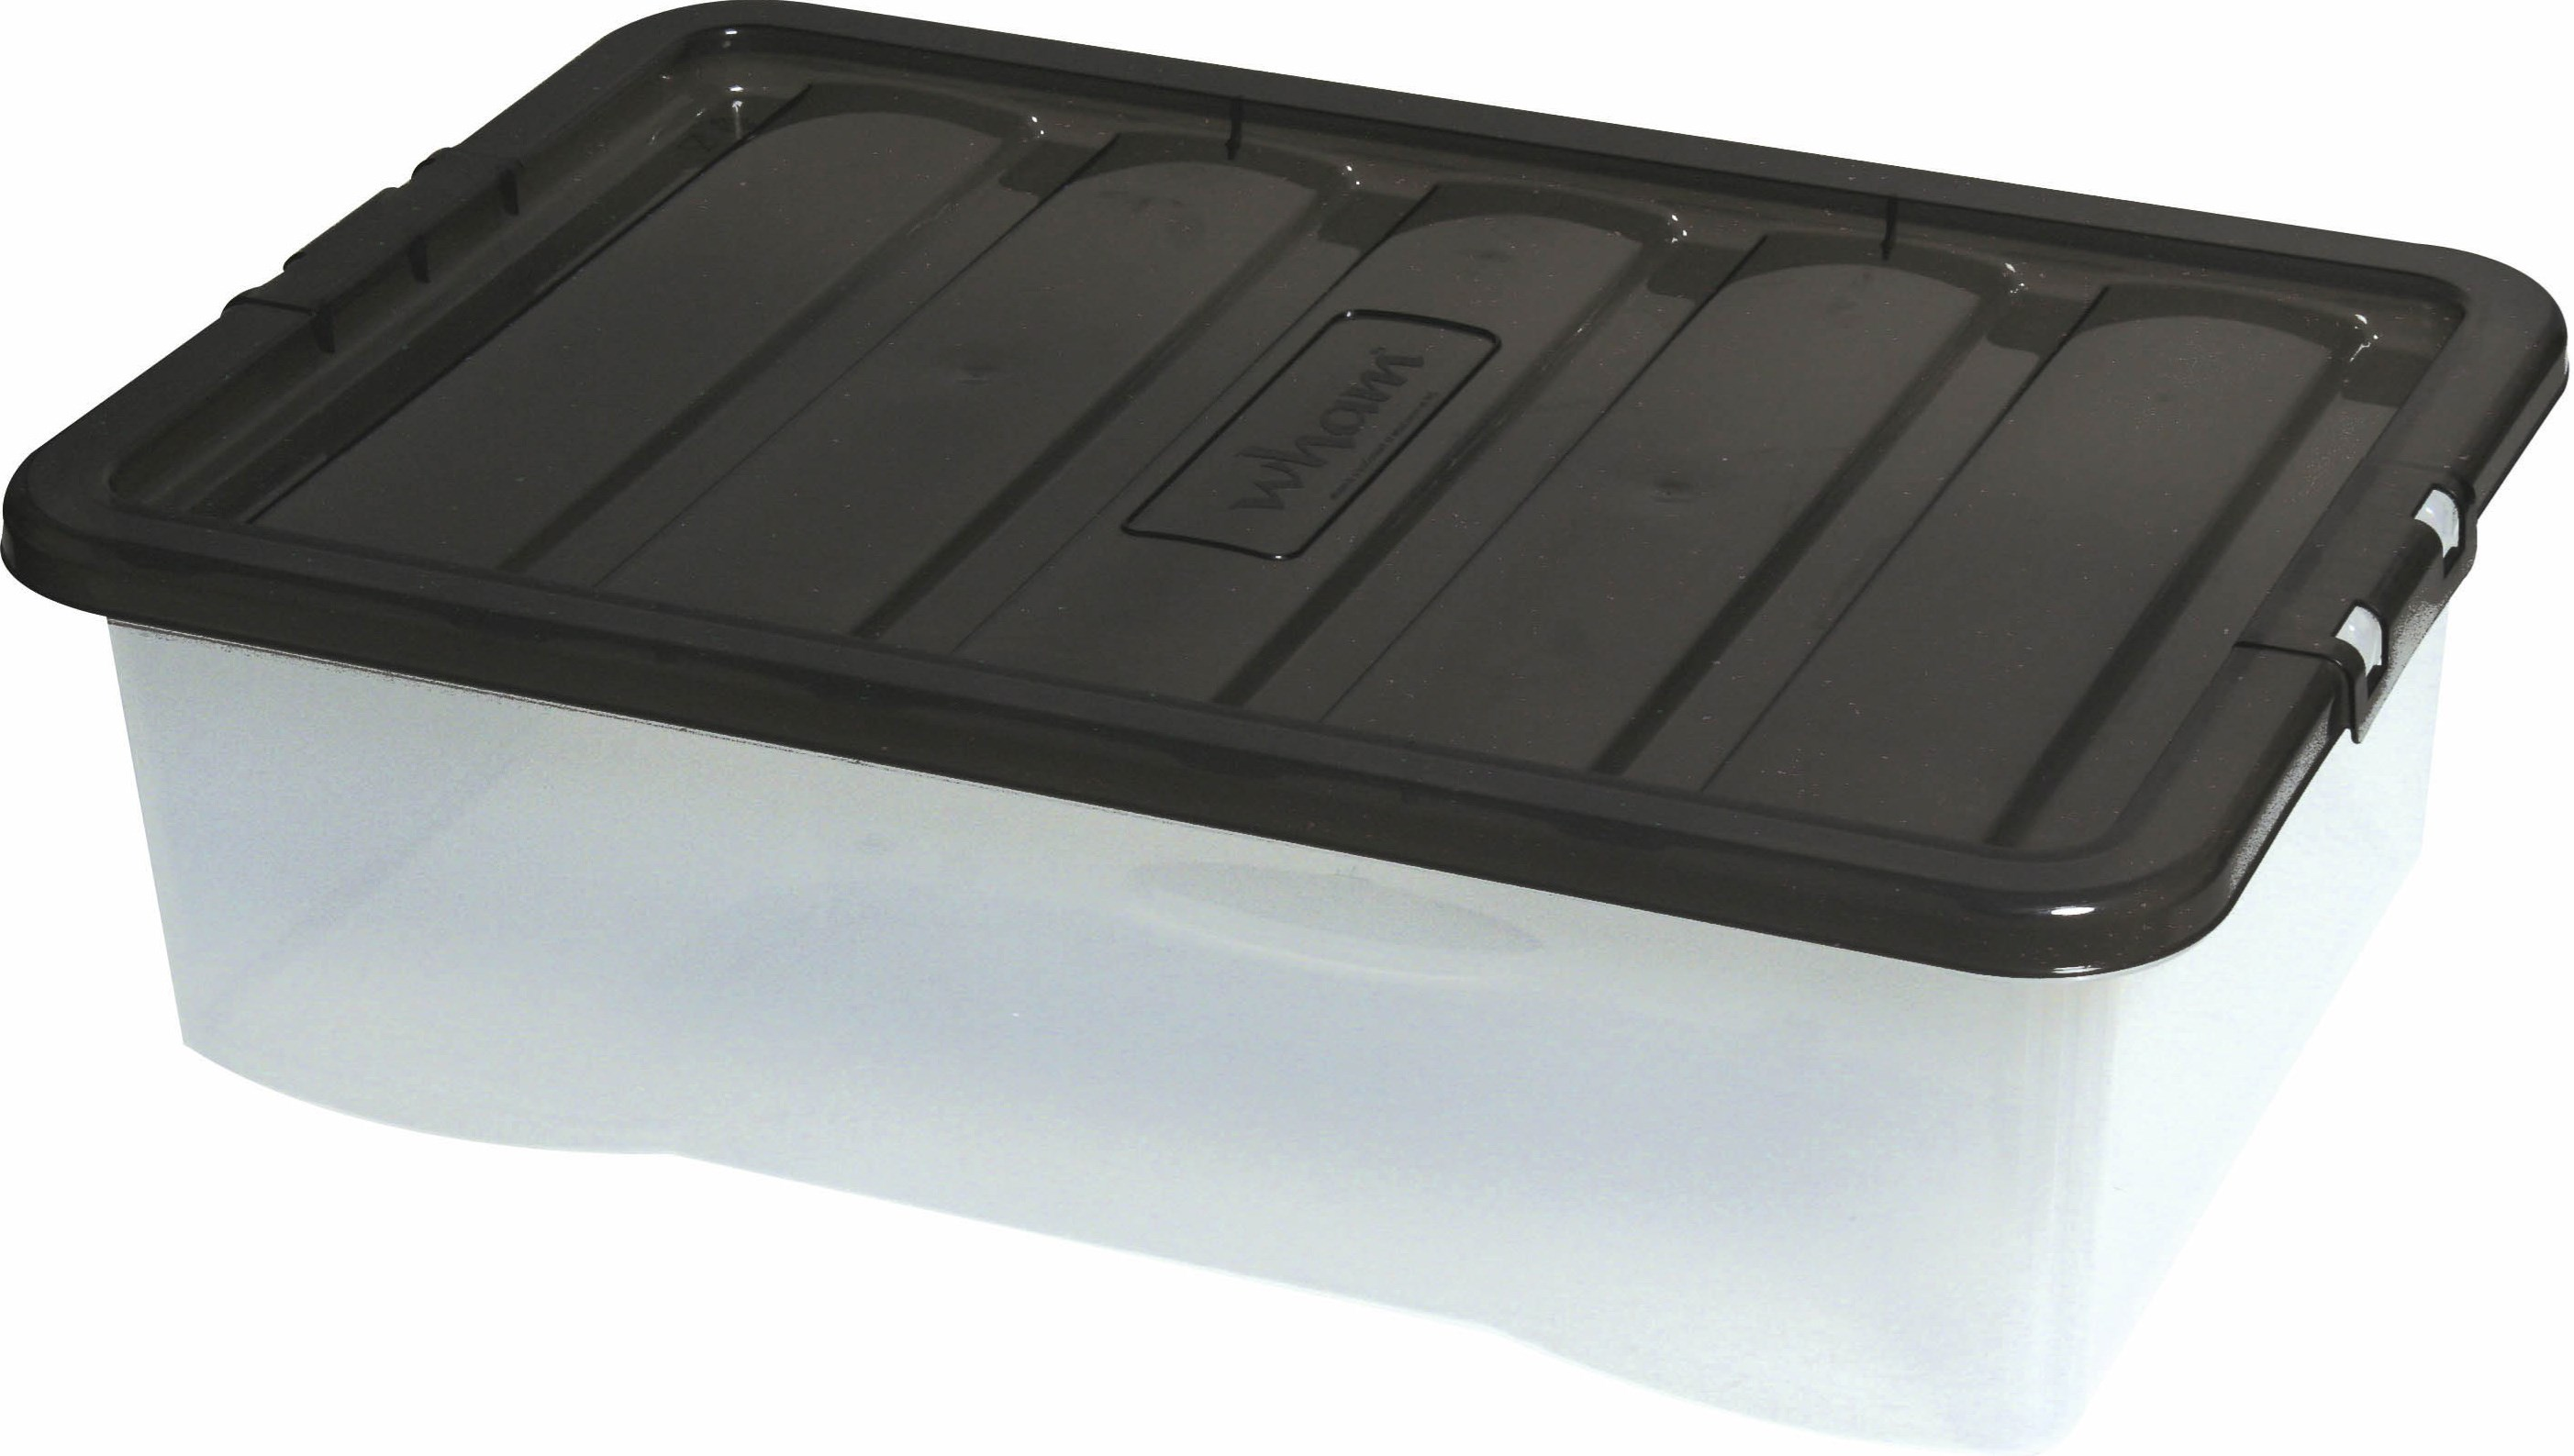 Wham Fusion Underbed Clear Storage Box Black Lid 32 Litre